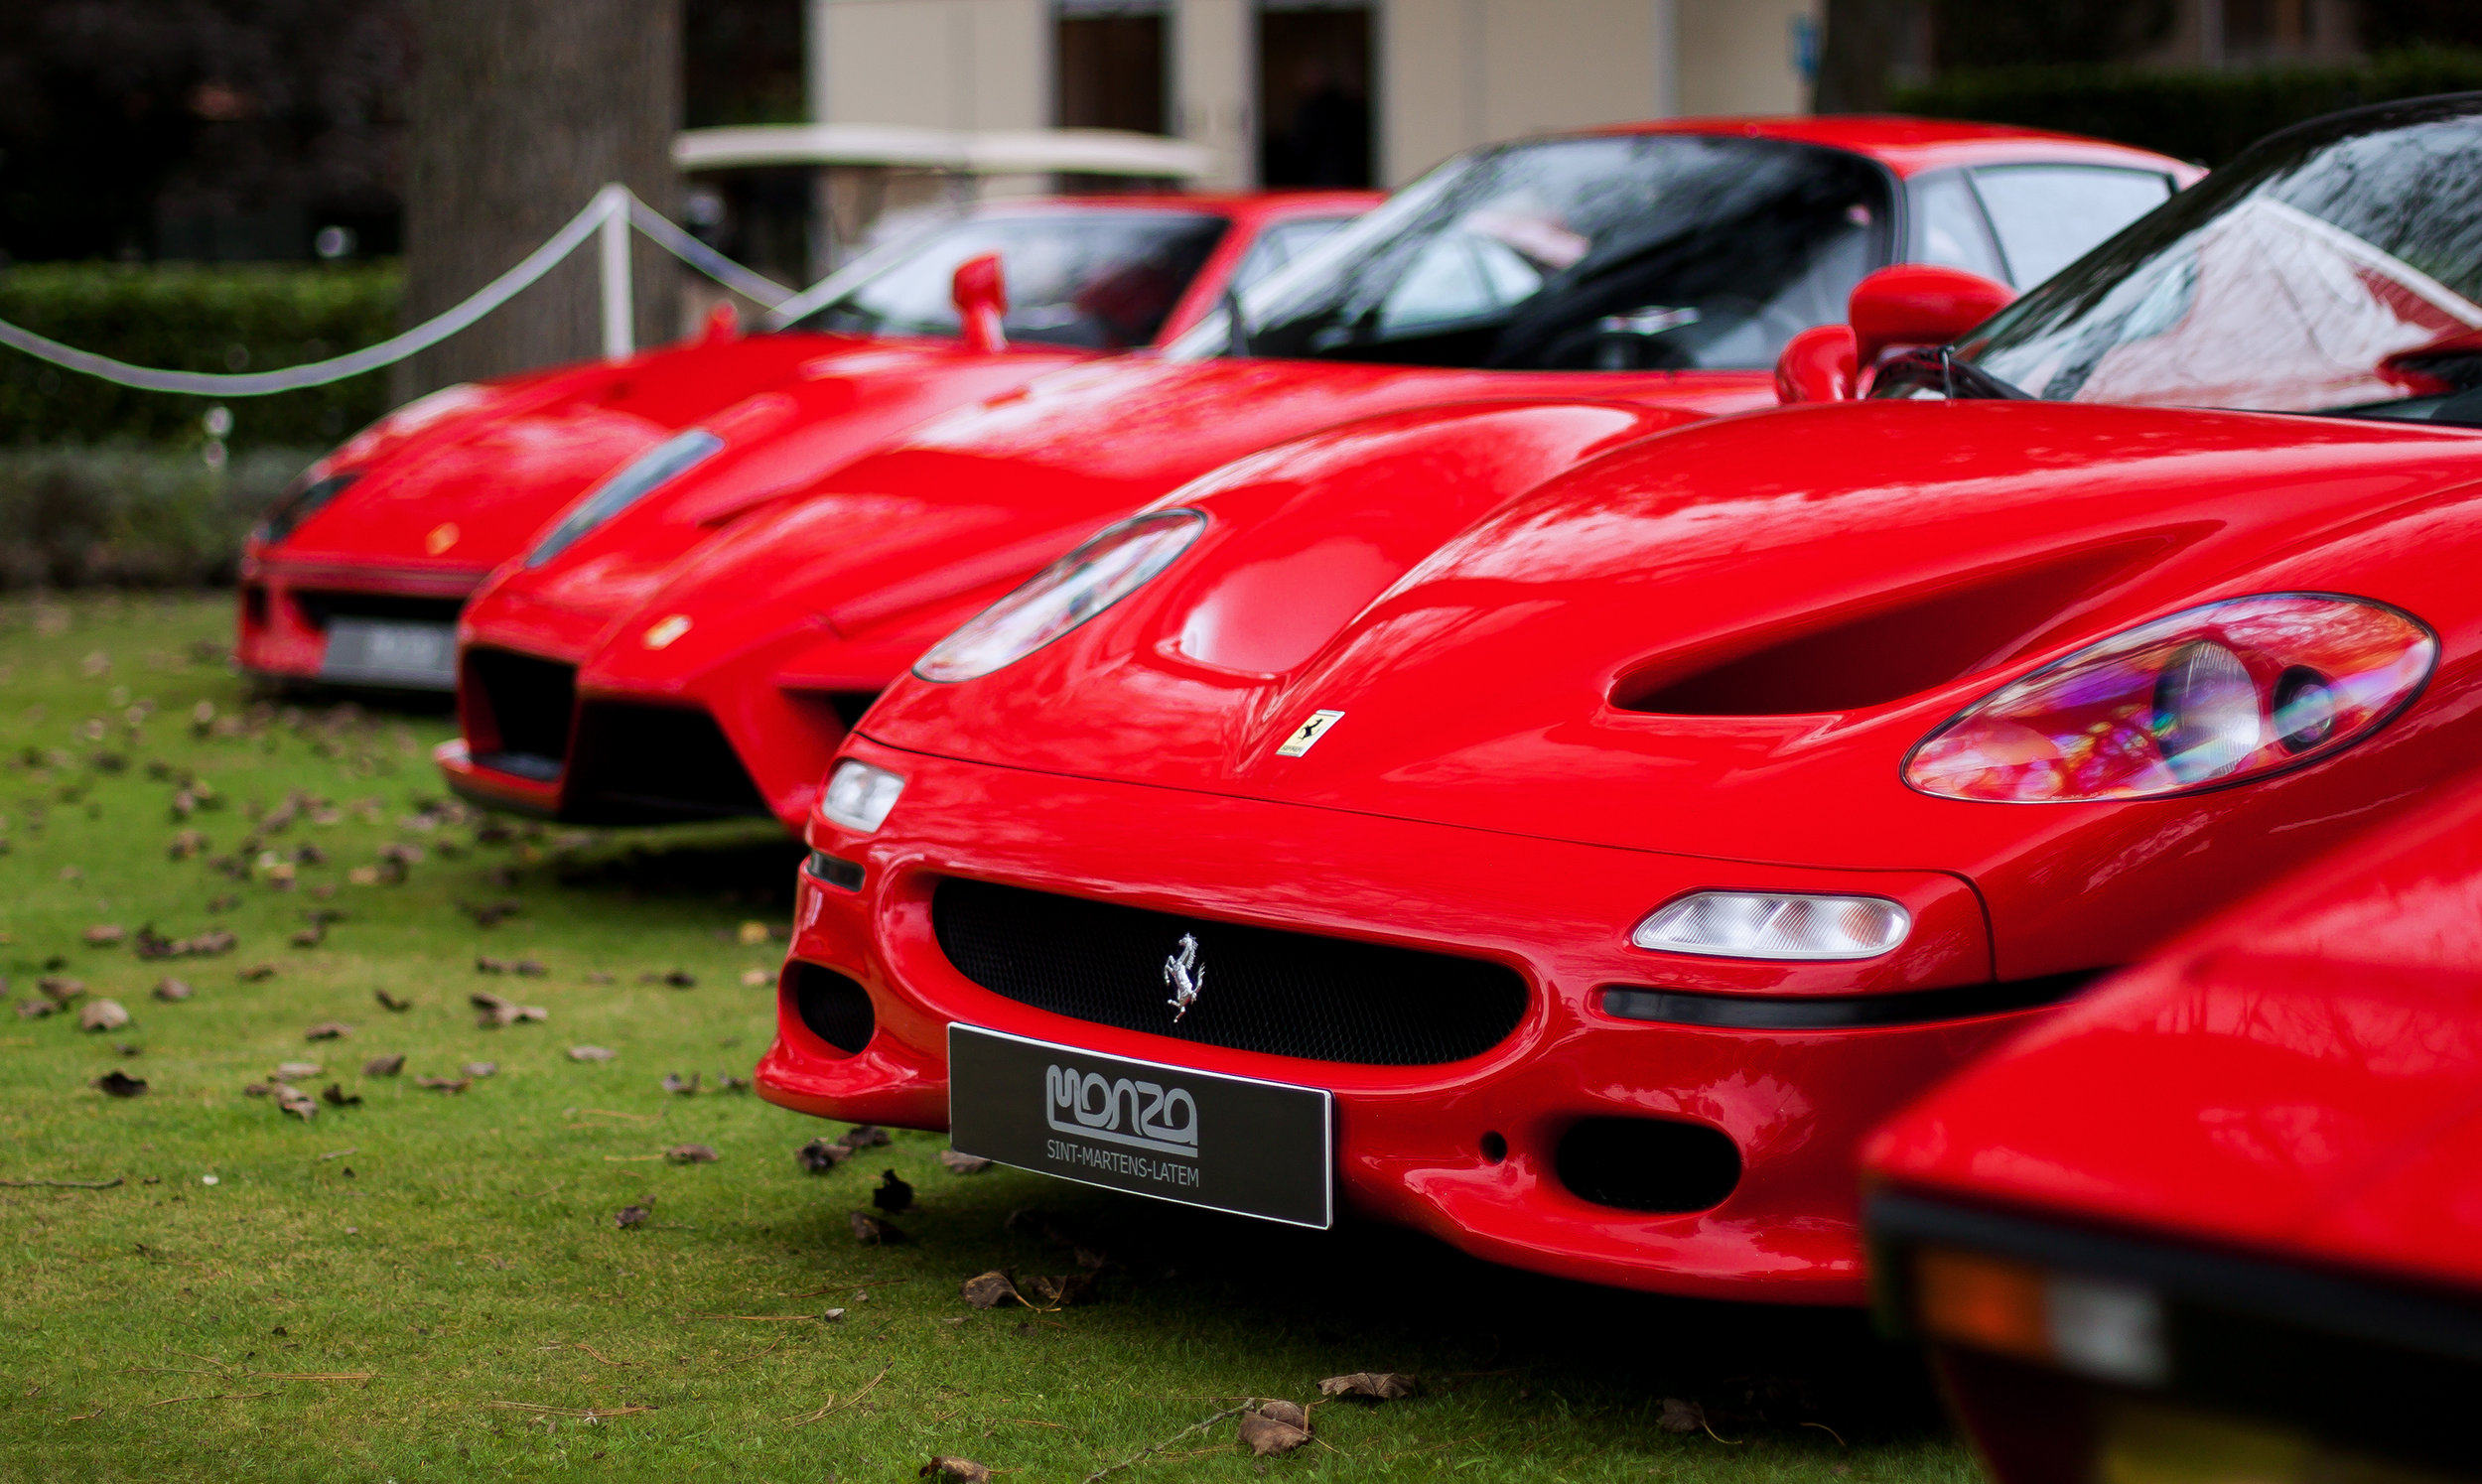 iMAGE OF A LINE OF EXPENSIVE CARS